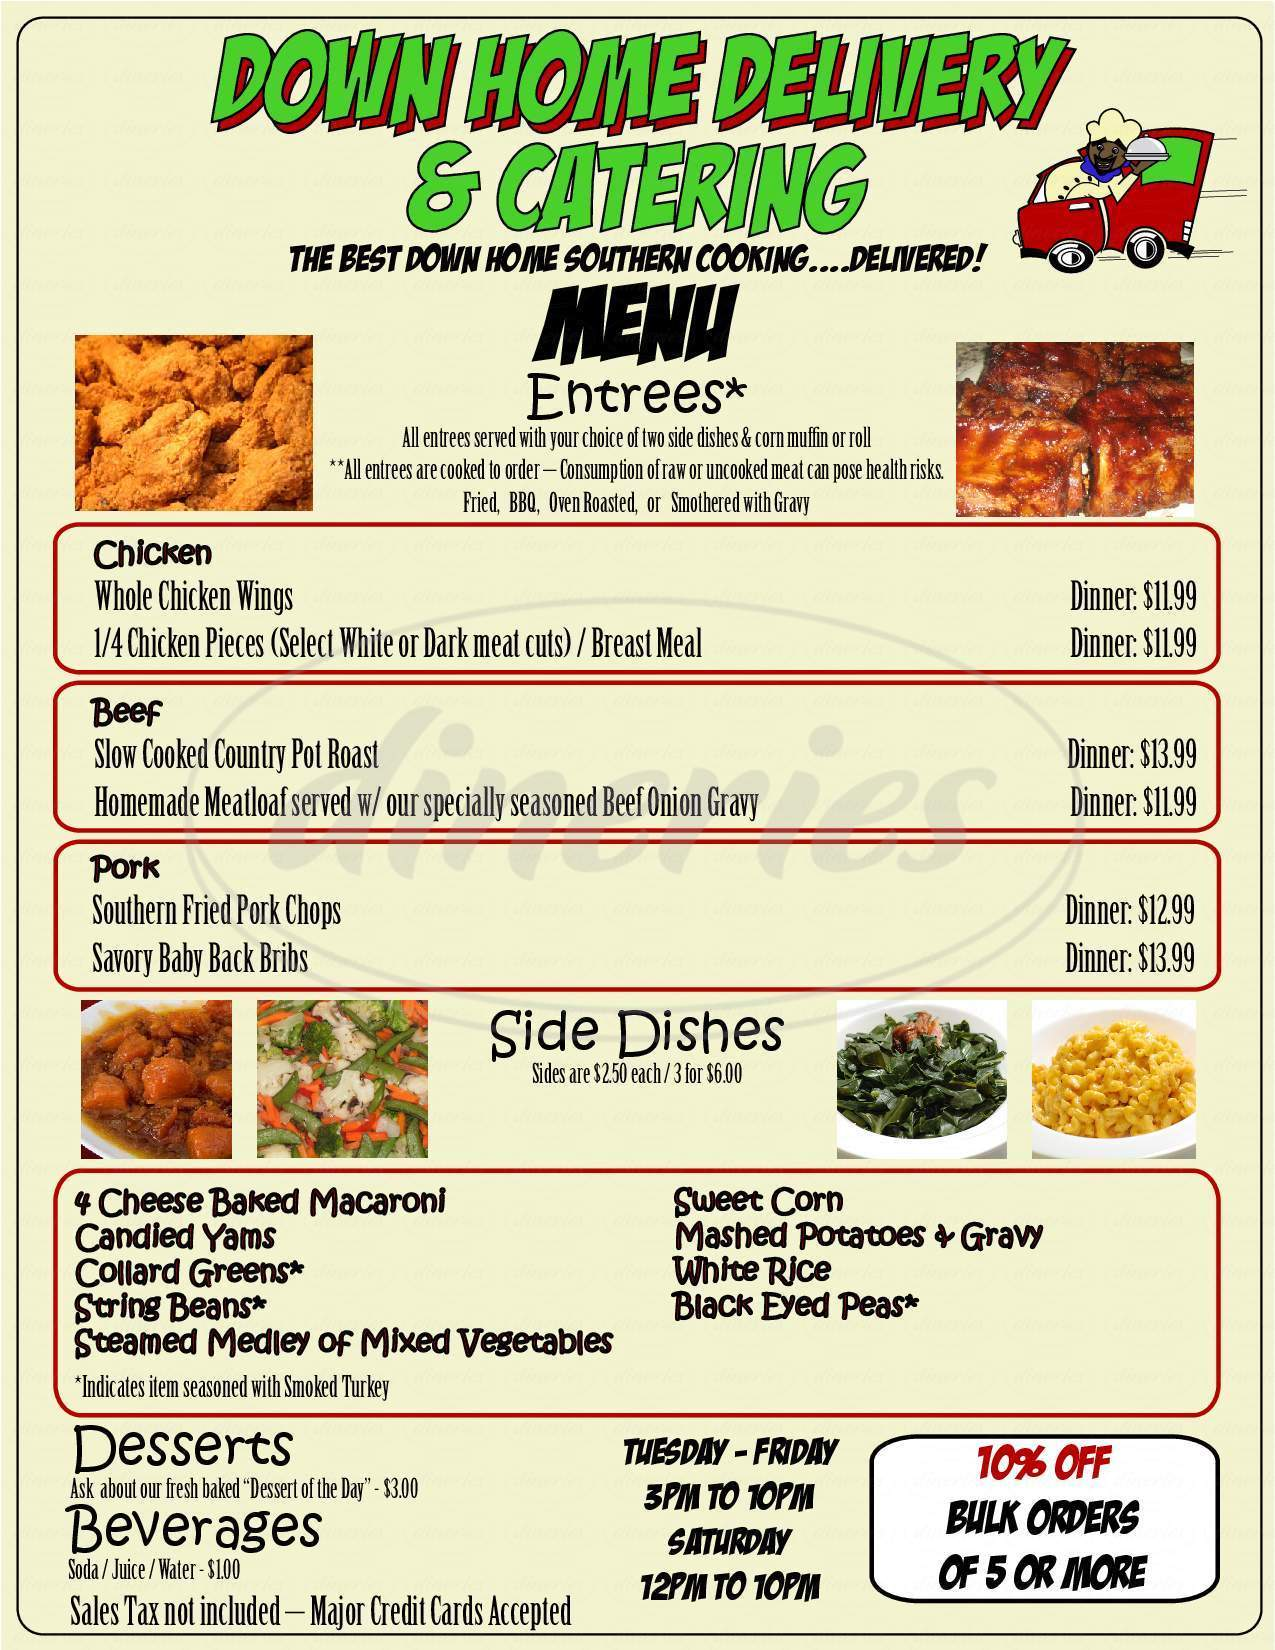 menu for Down Home Delivery & Catering